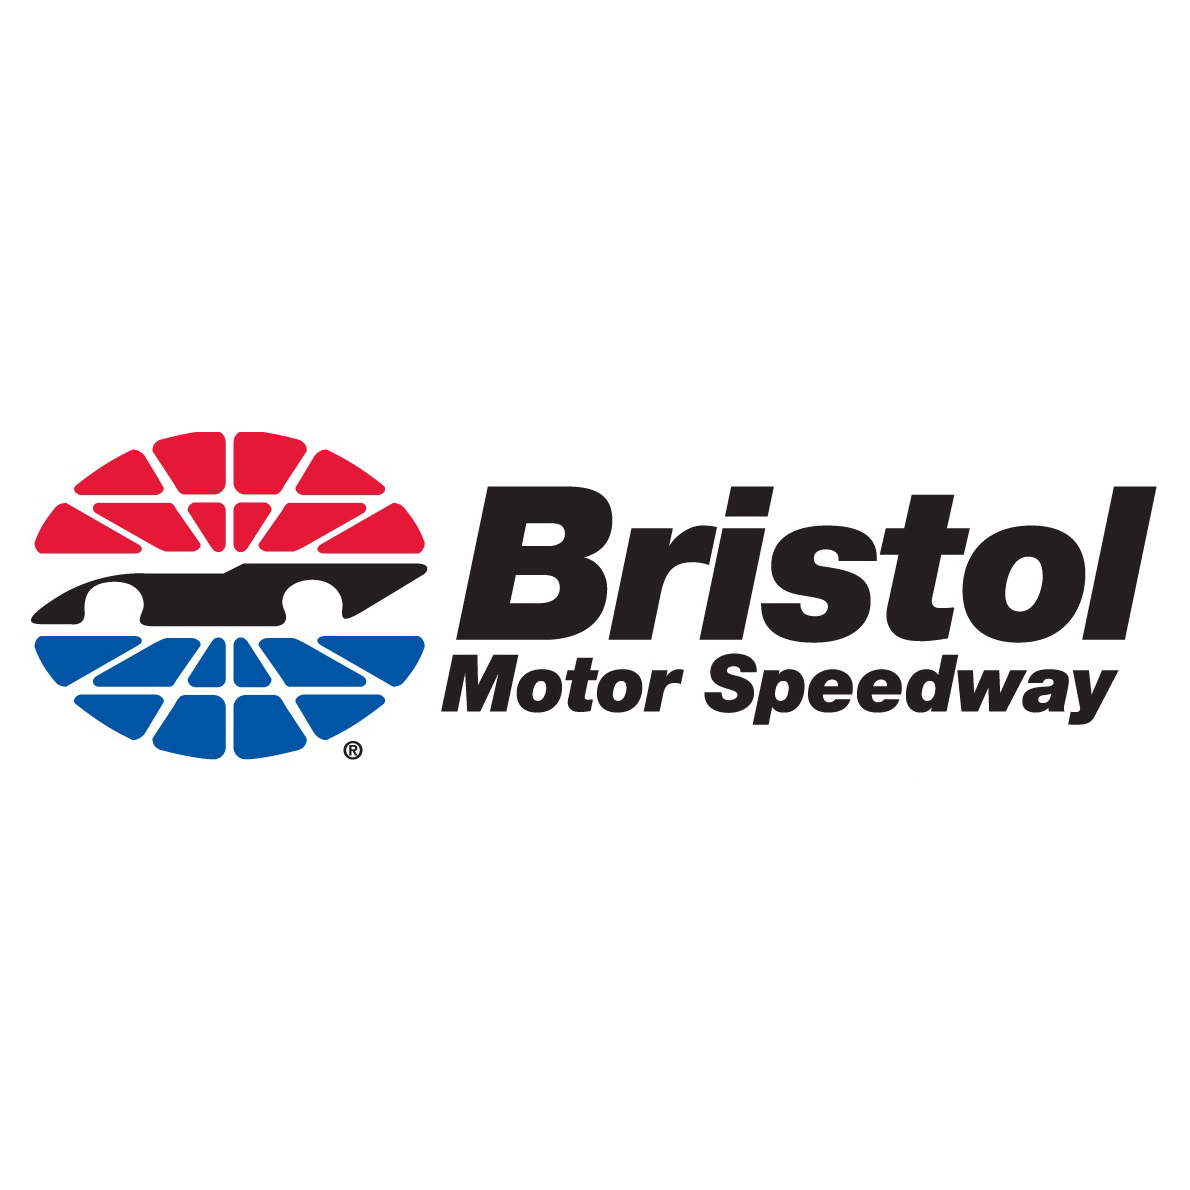 Bristol motor speedway in bristol tn 37620 for Bristol motor mile dealerships